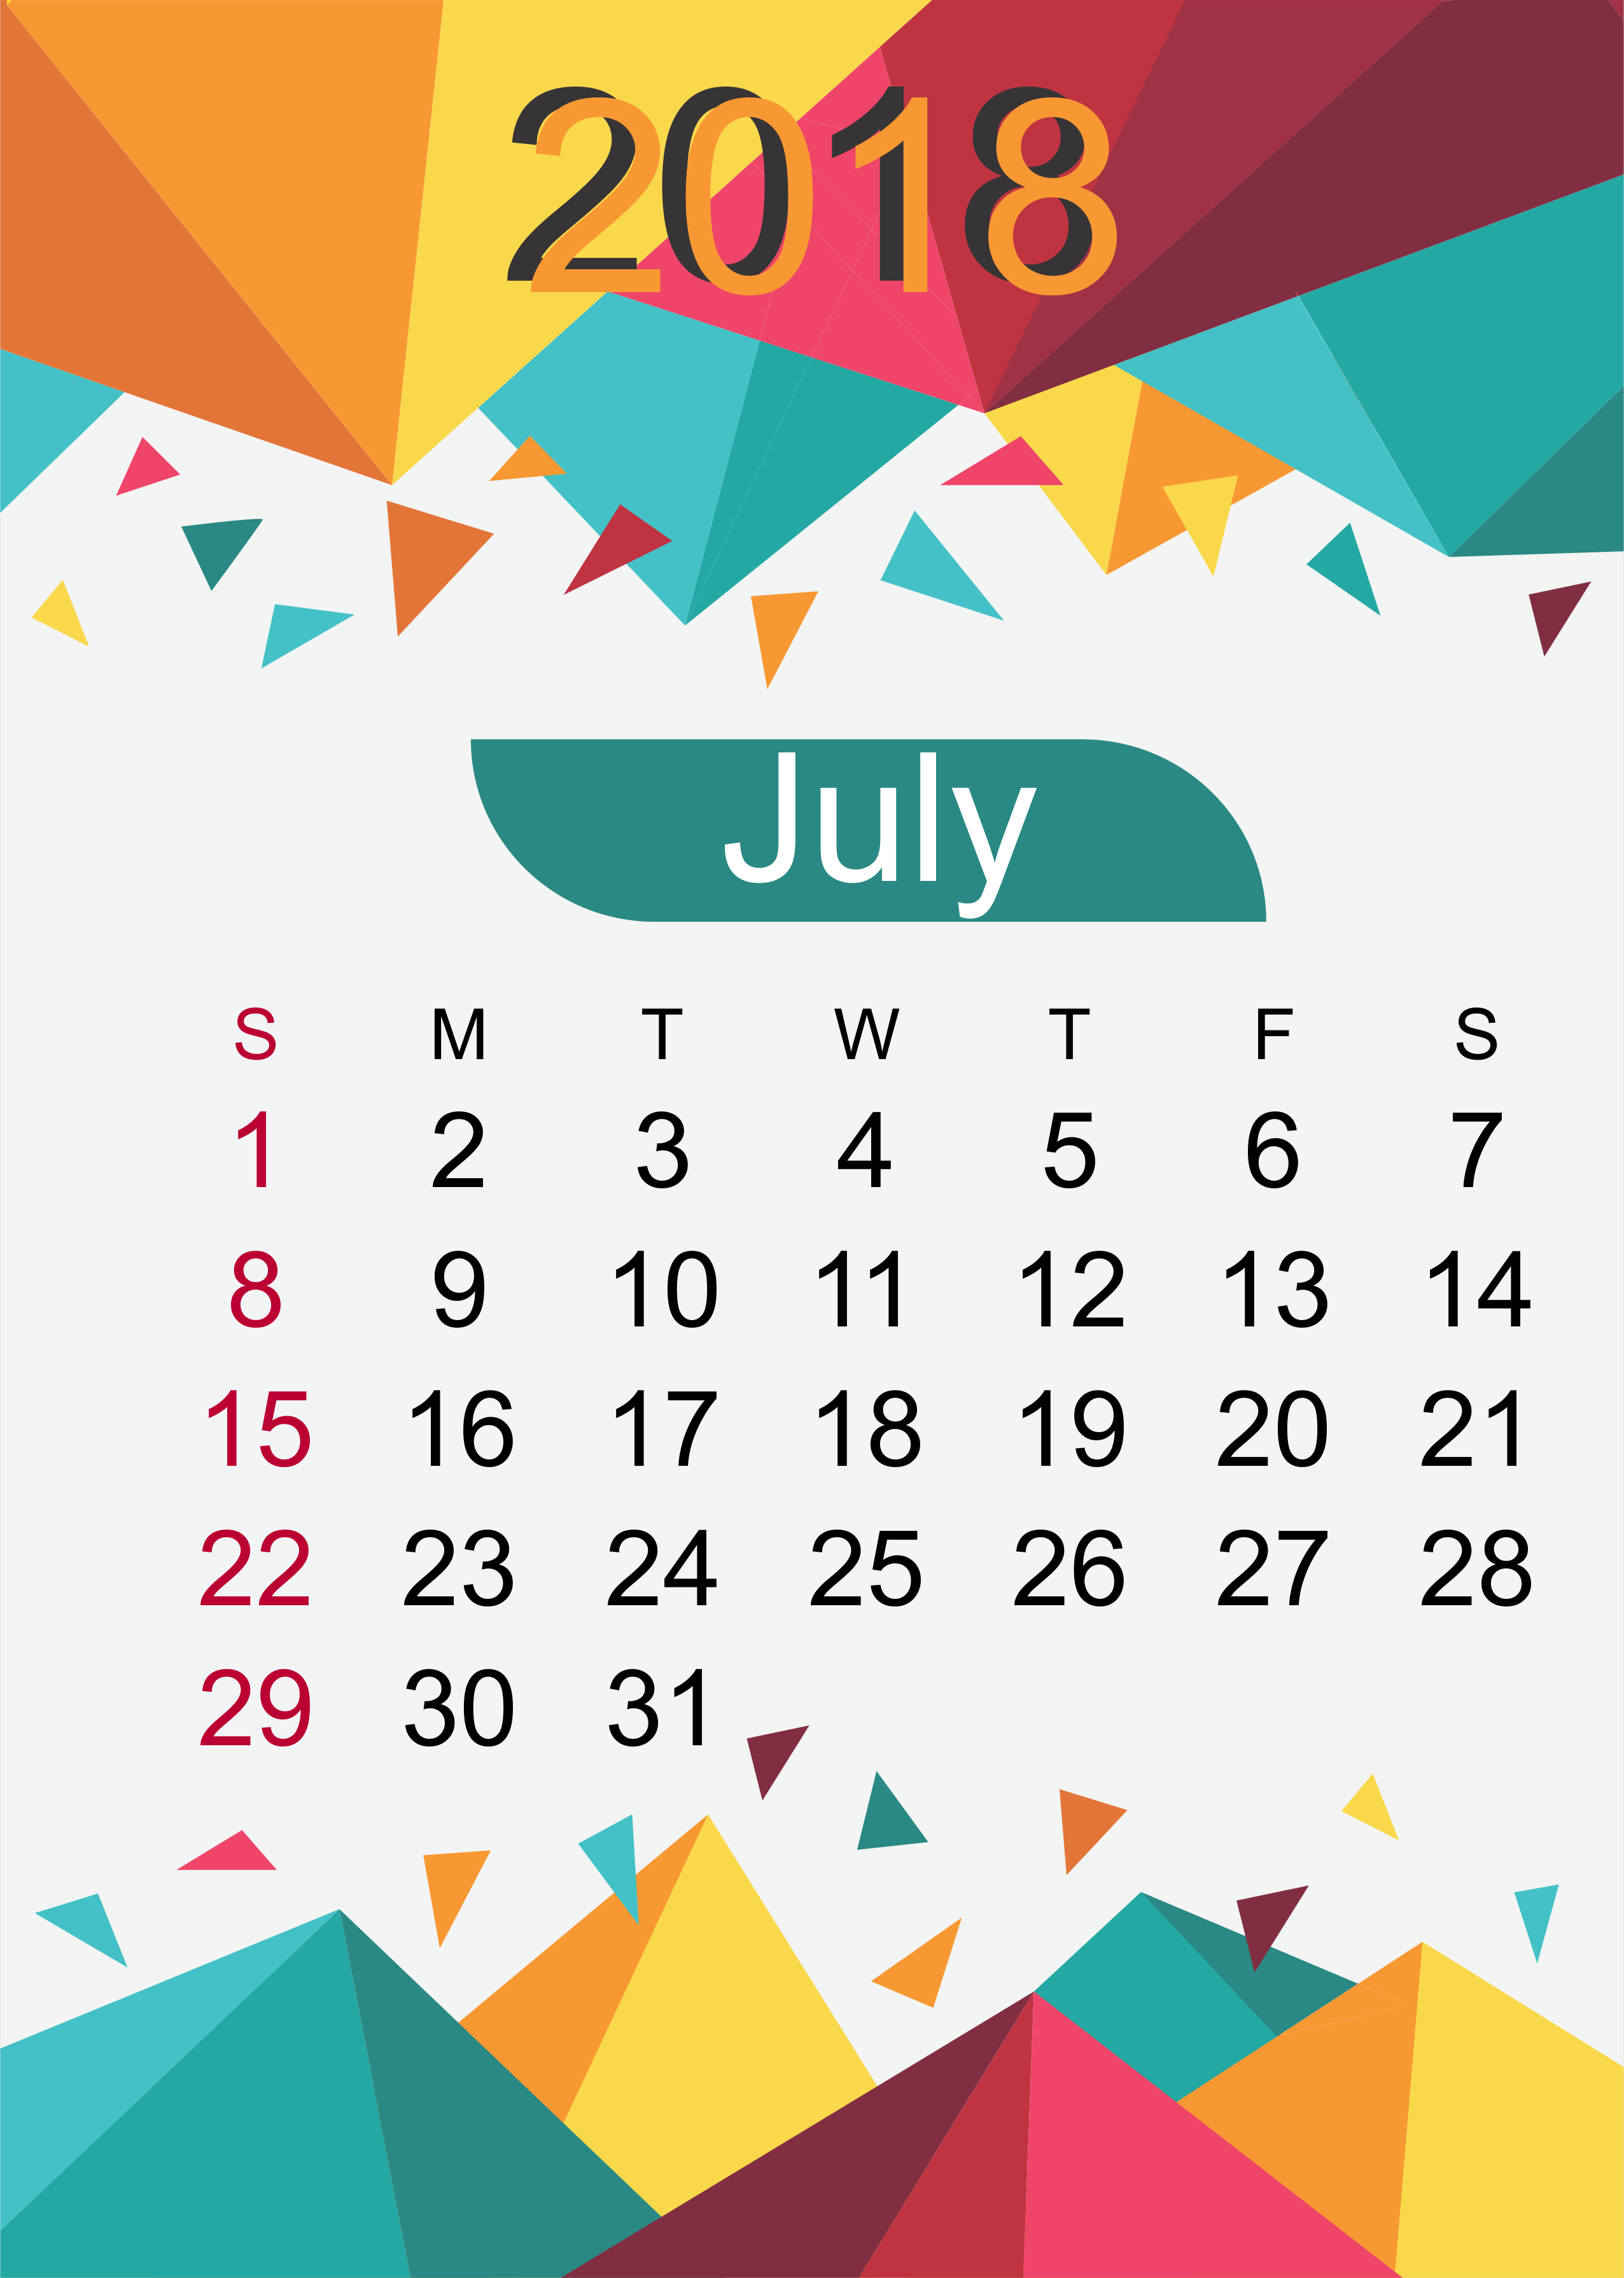 Personalized July 2018 Desk Calendar